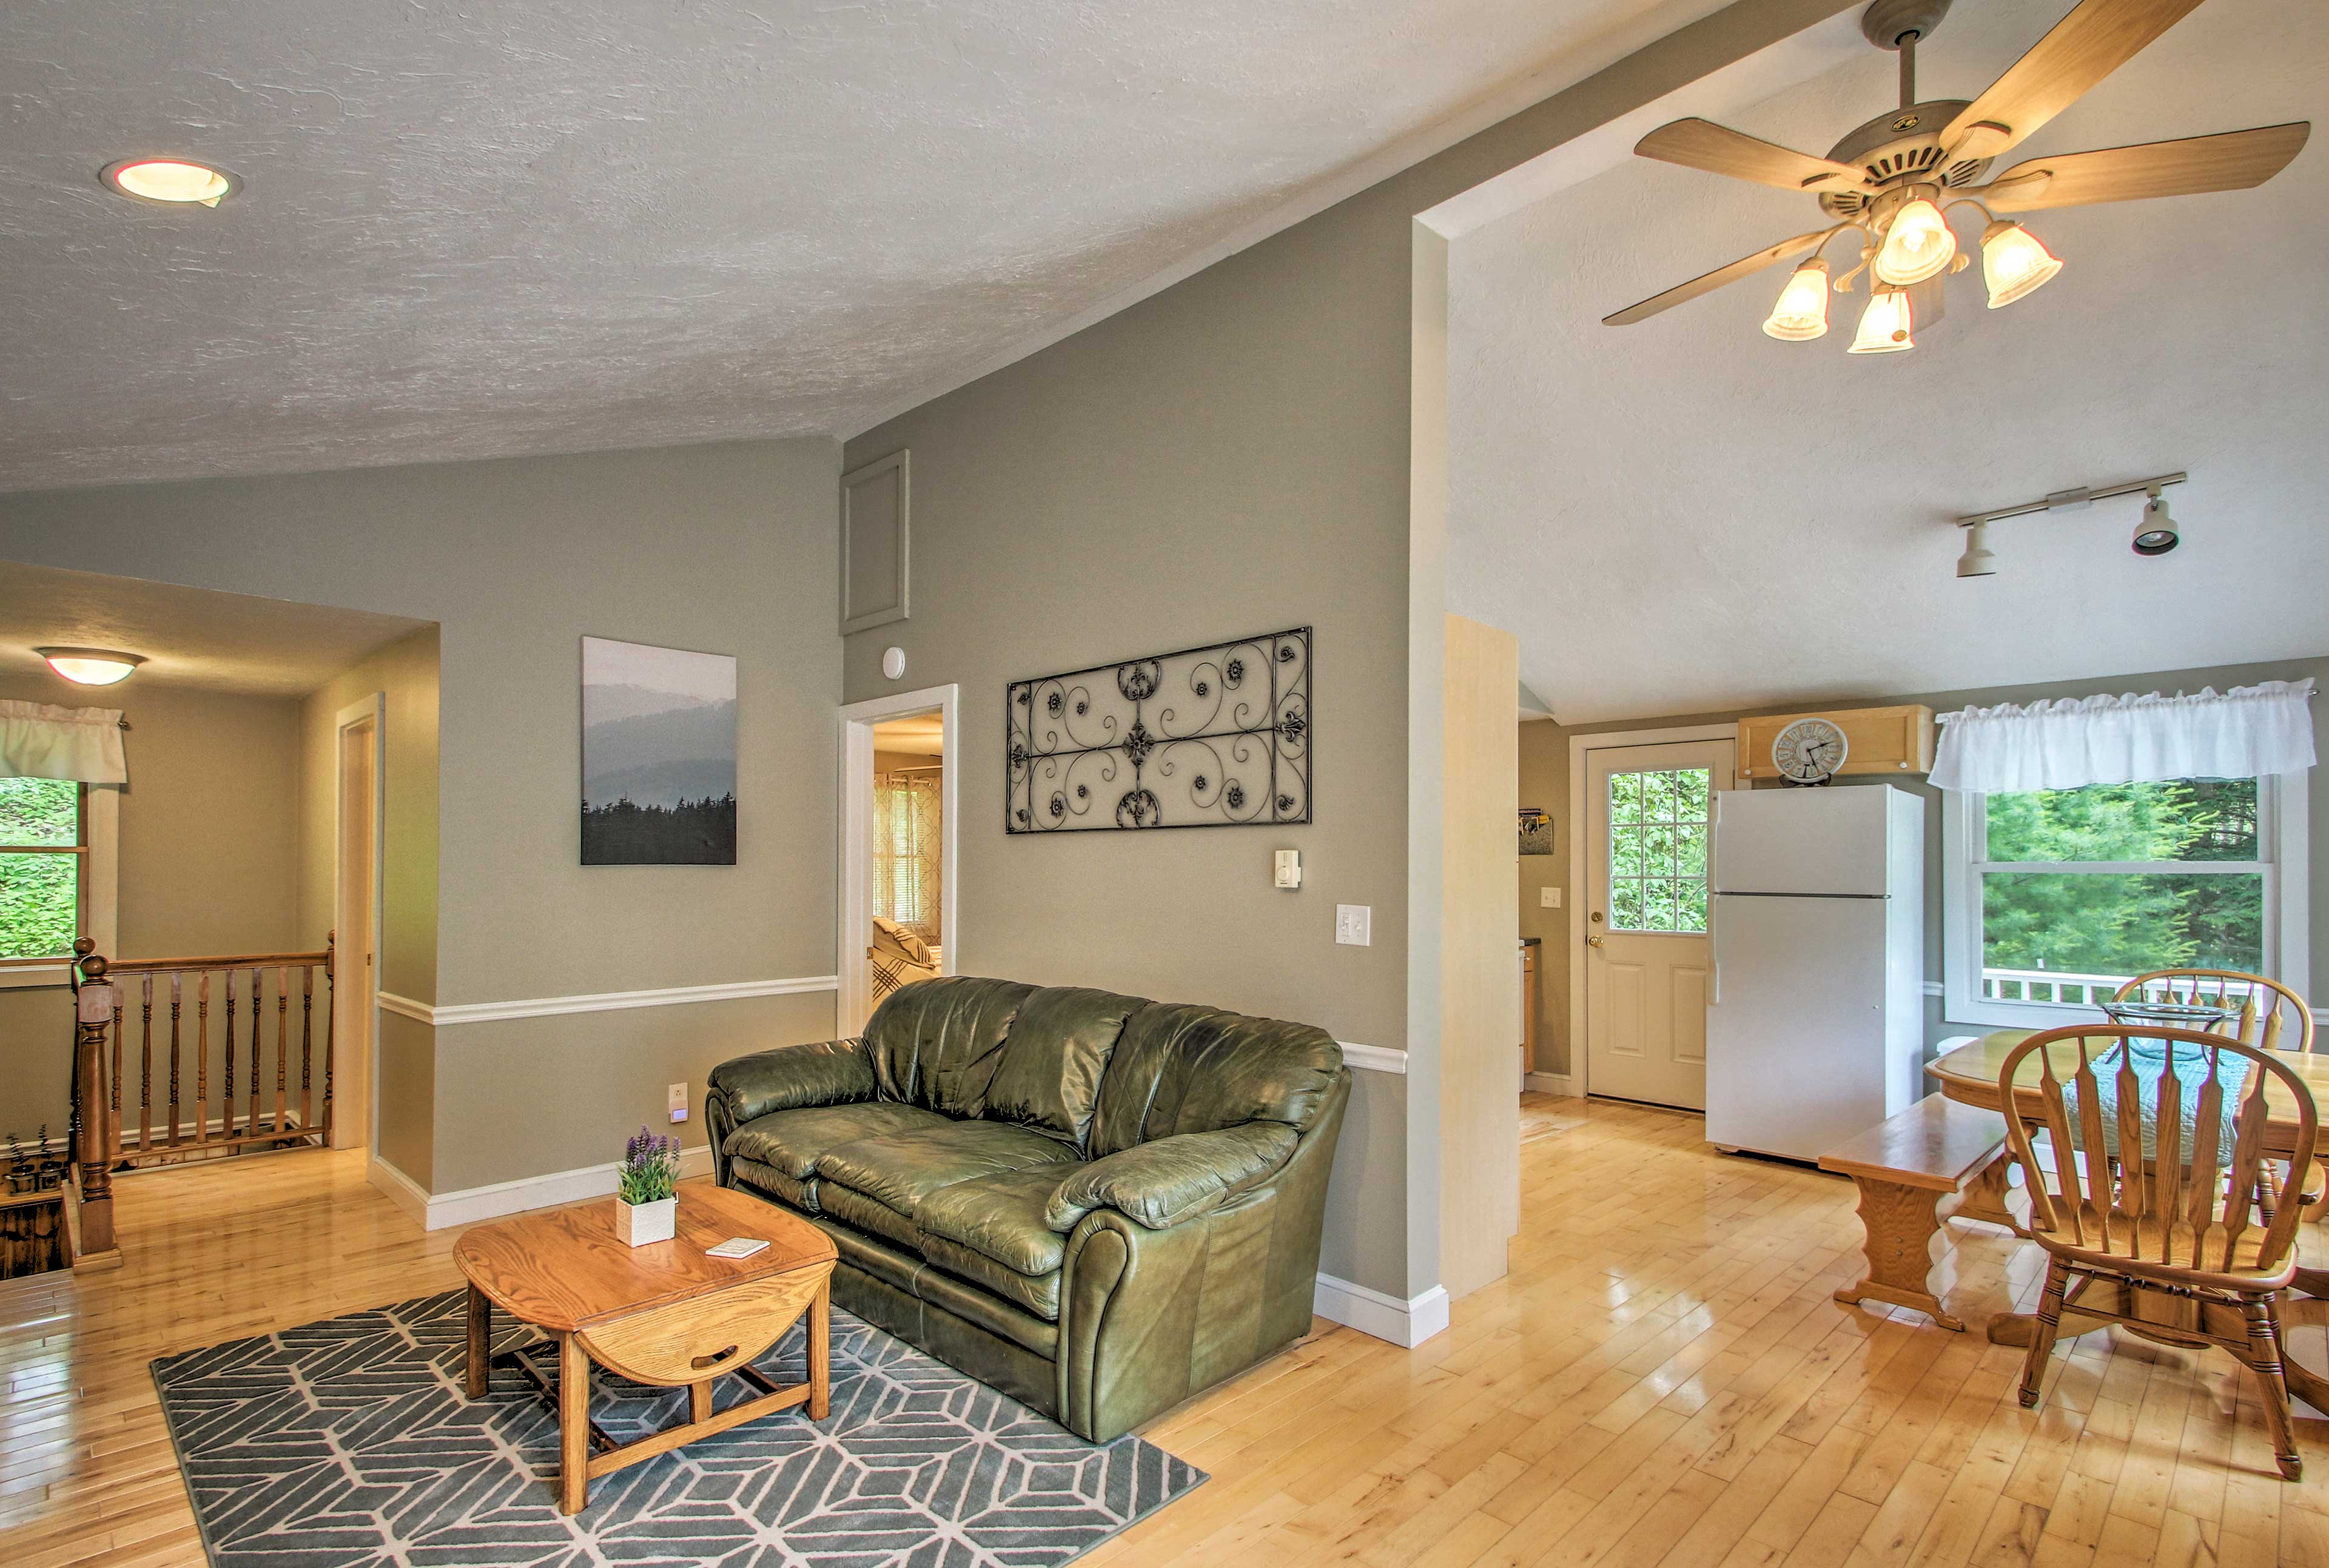 The vaulted ceilings make for an expansive feeling.